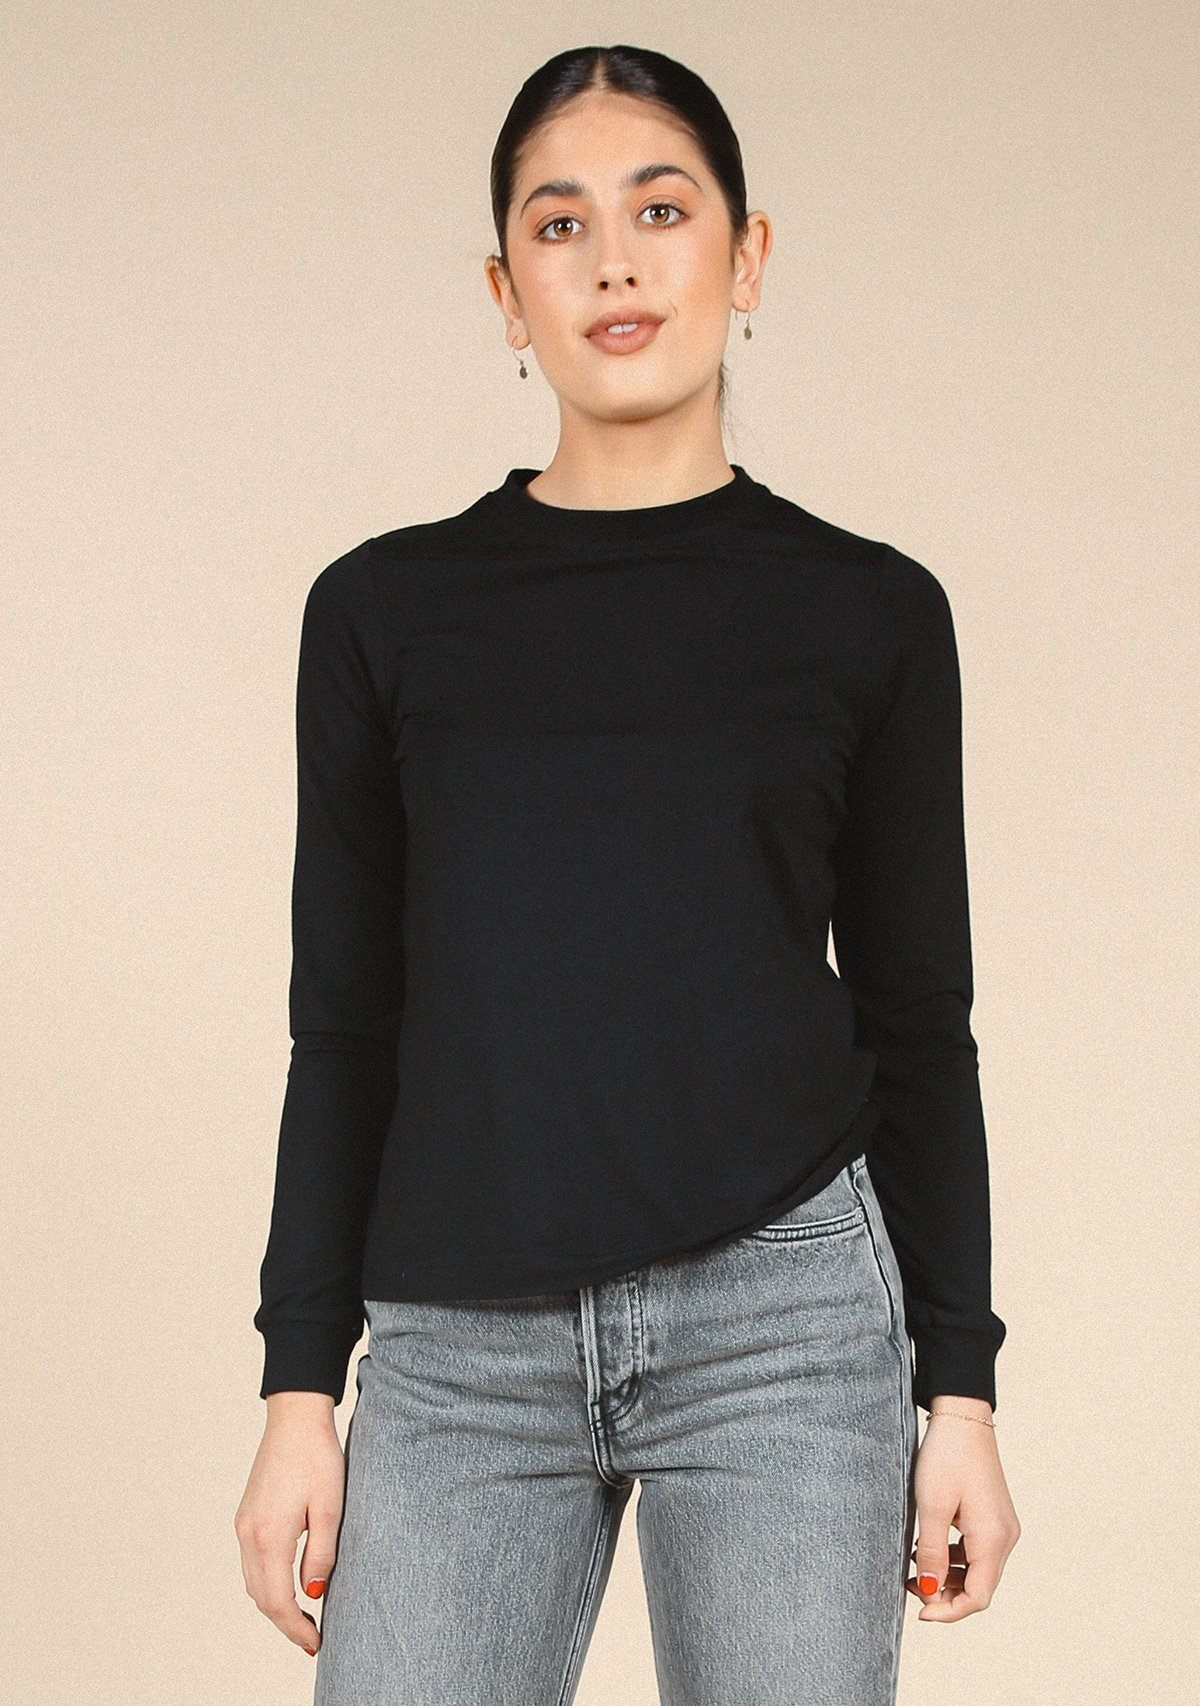 Poplinen Gwen Tencel Long Sleeve Tee - Black Clothing Poplinen Black XS